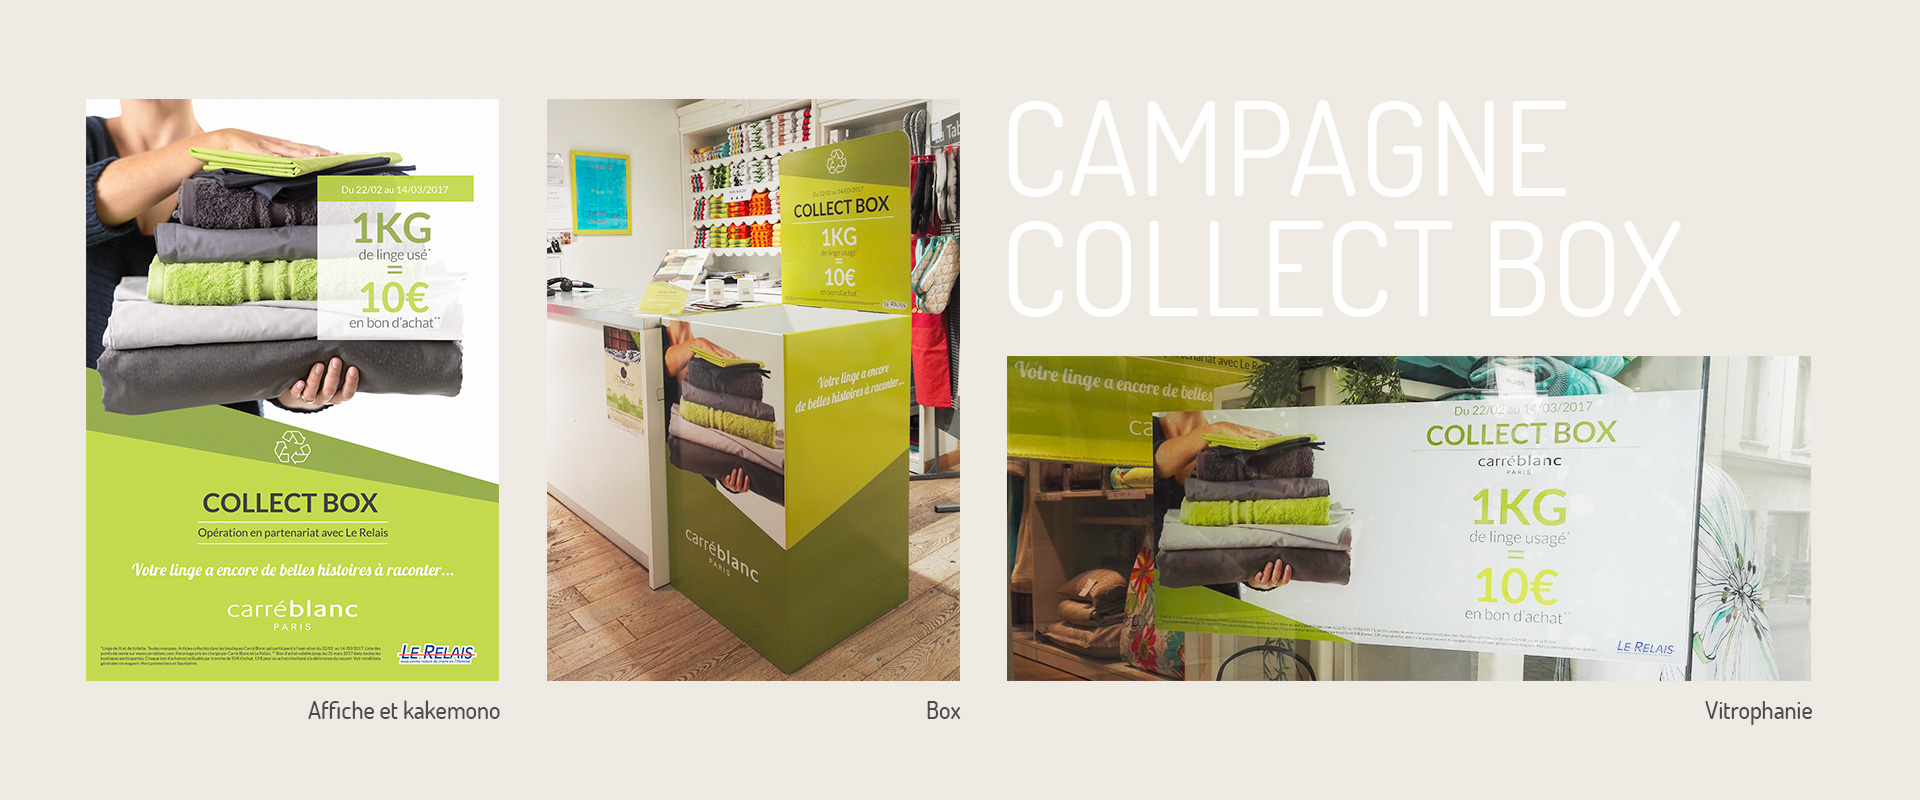 Campagne Collect box Carré Blanc : box, vitrophanie, affiche et kakemono